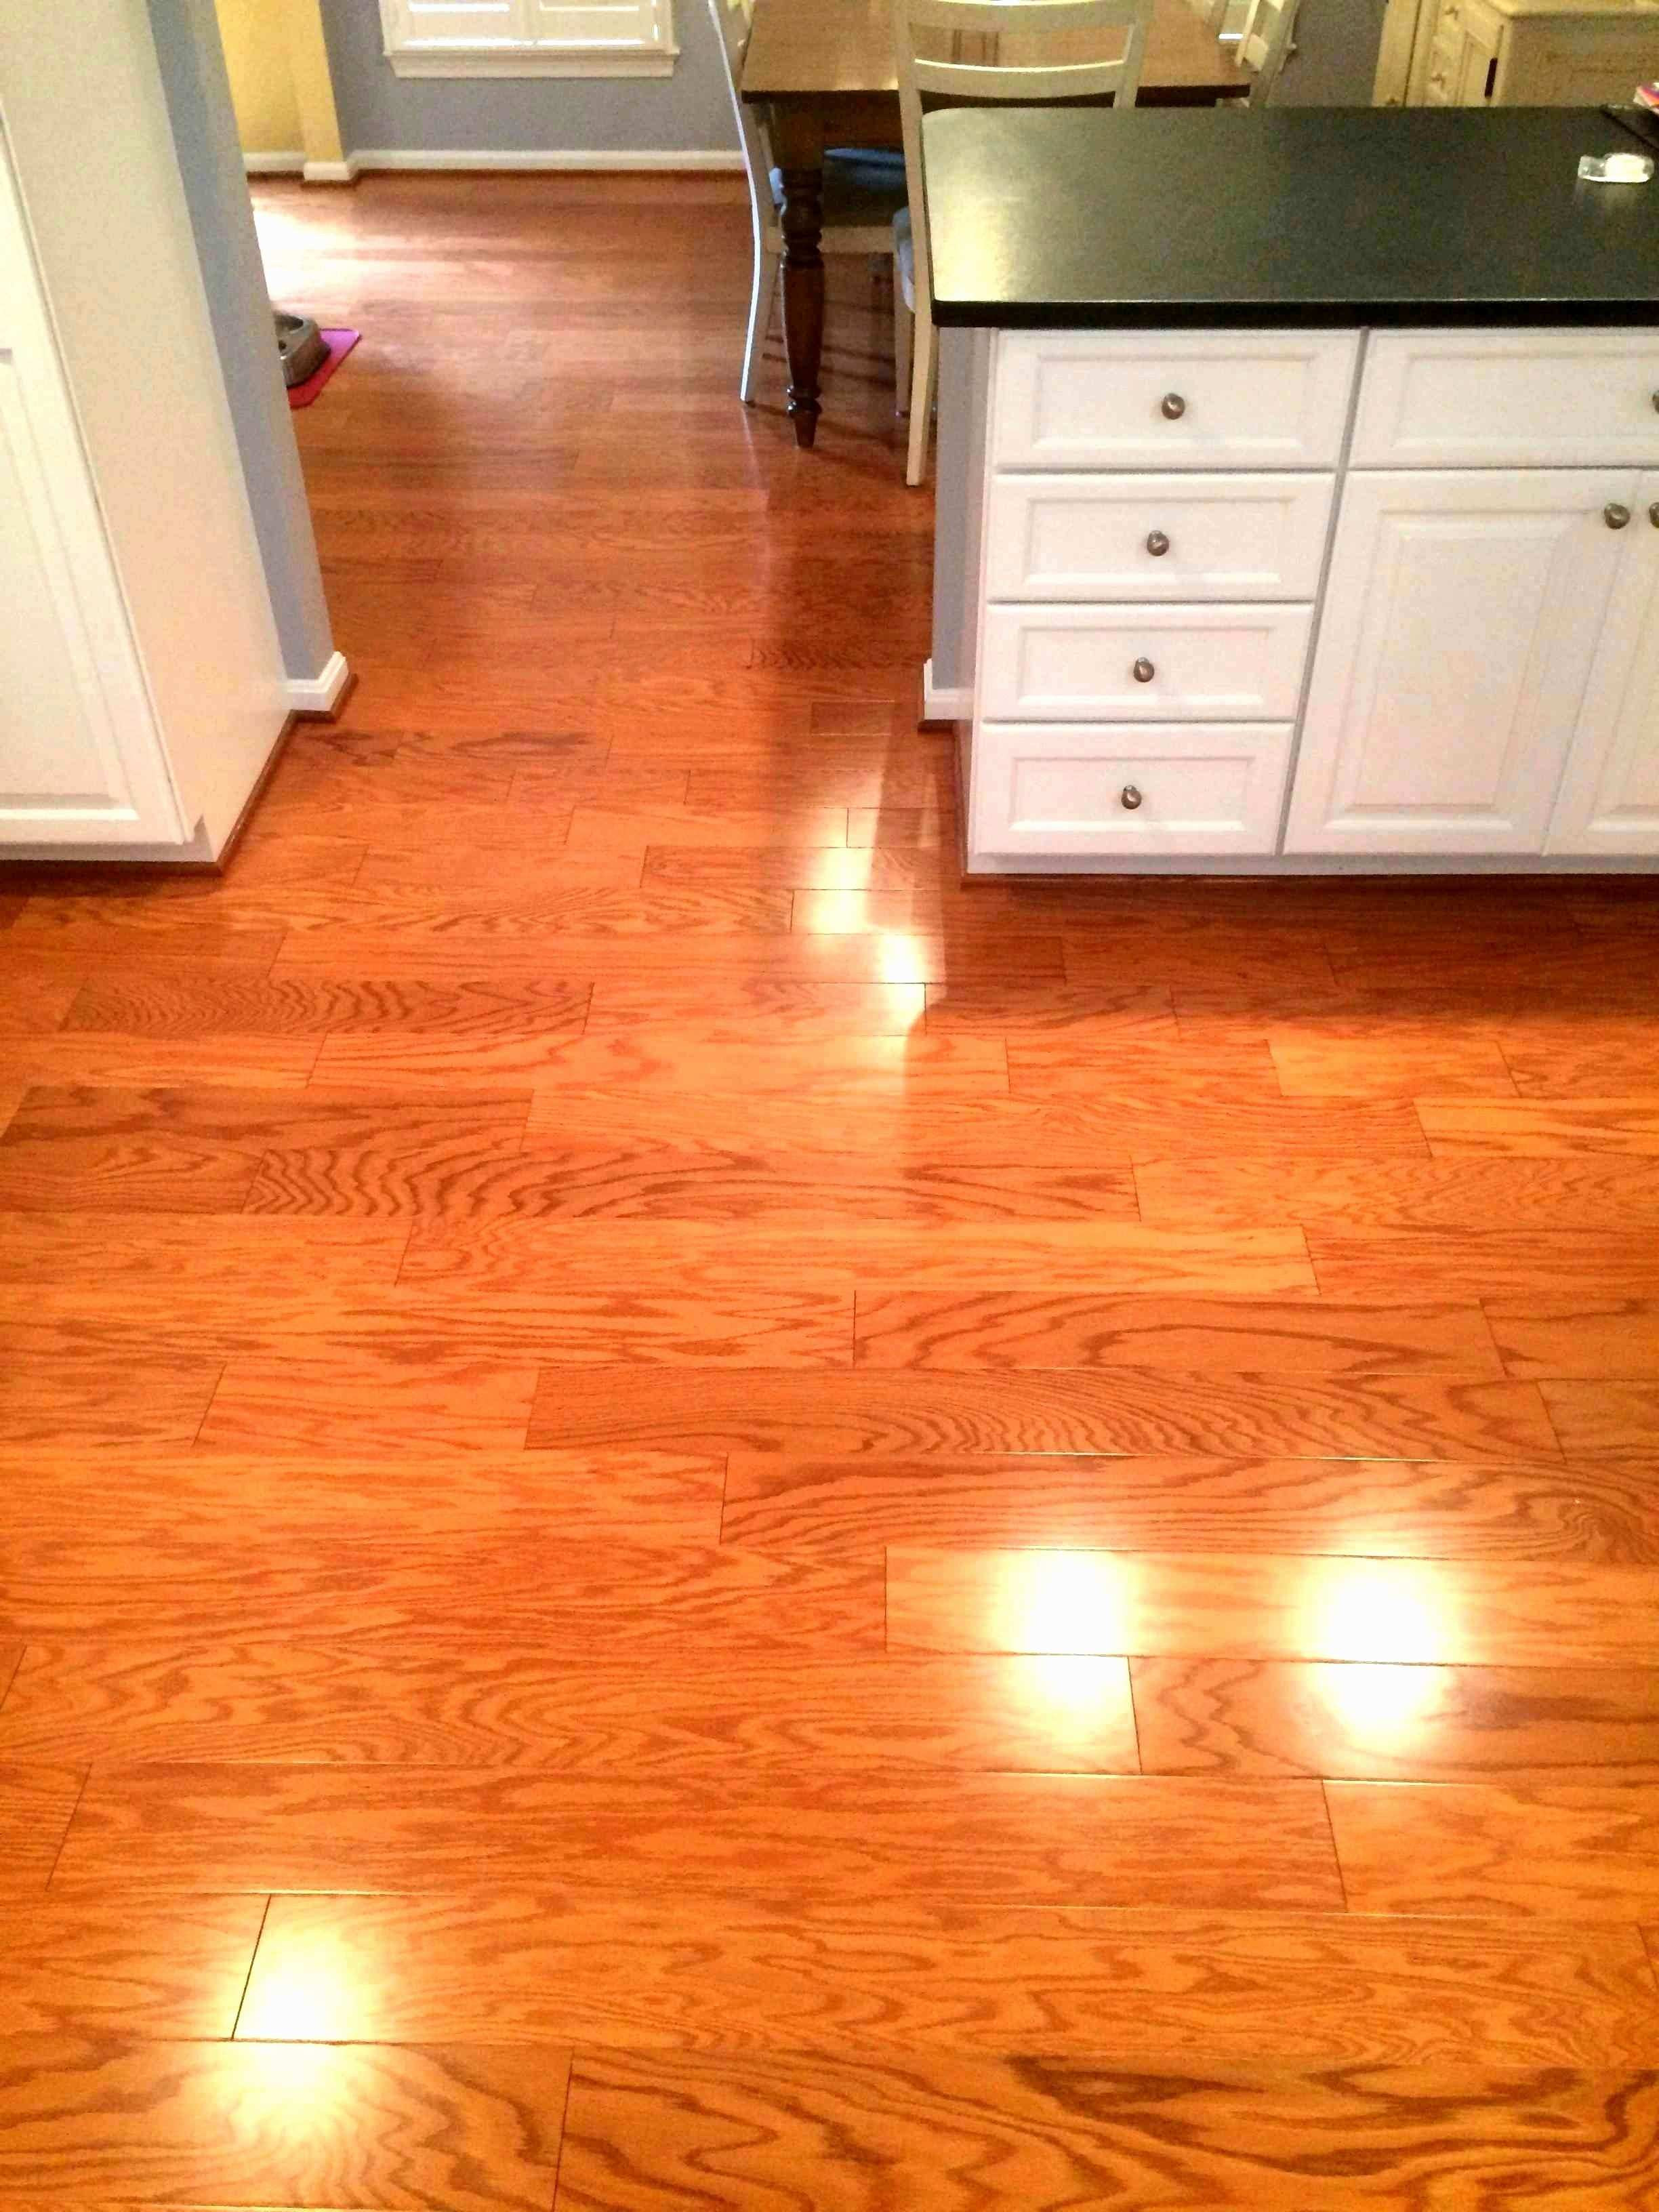 hardwood floor transition between uneven rooms of 30 lovely transition strips for laminate flooring in transition strips for laminate flooring beautiful cost refinish hardwood floors podemosleganes of 30 lovely transition